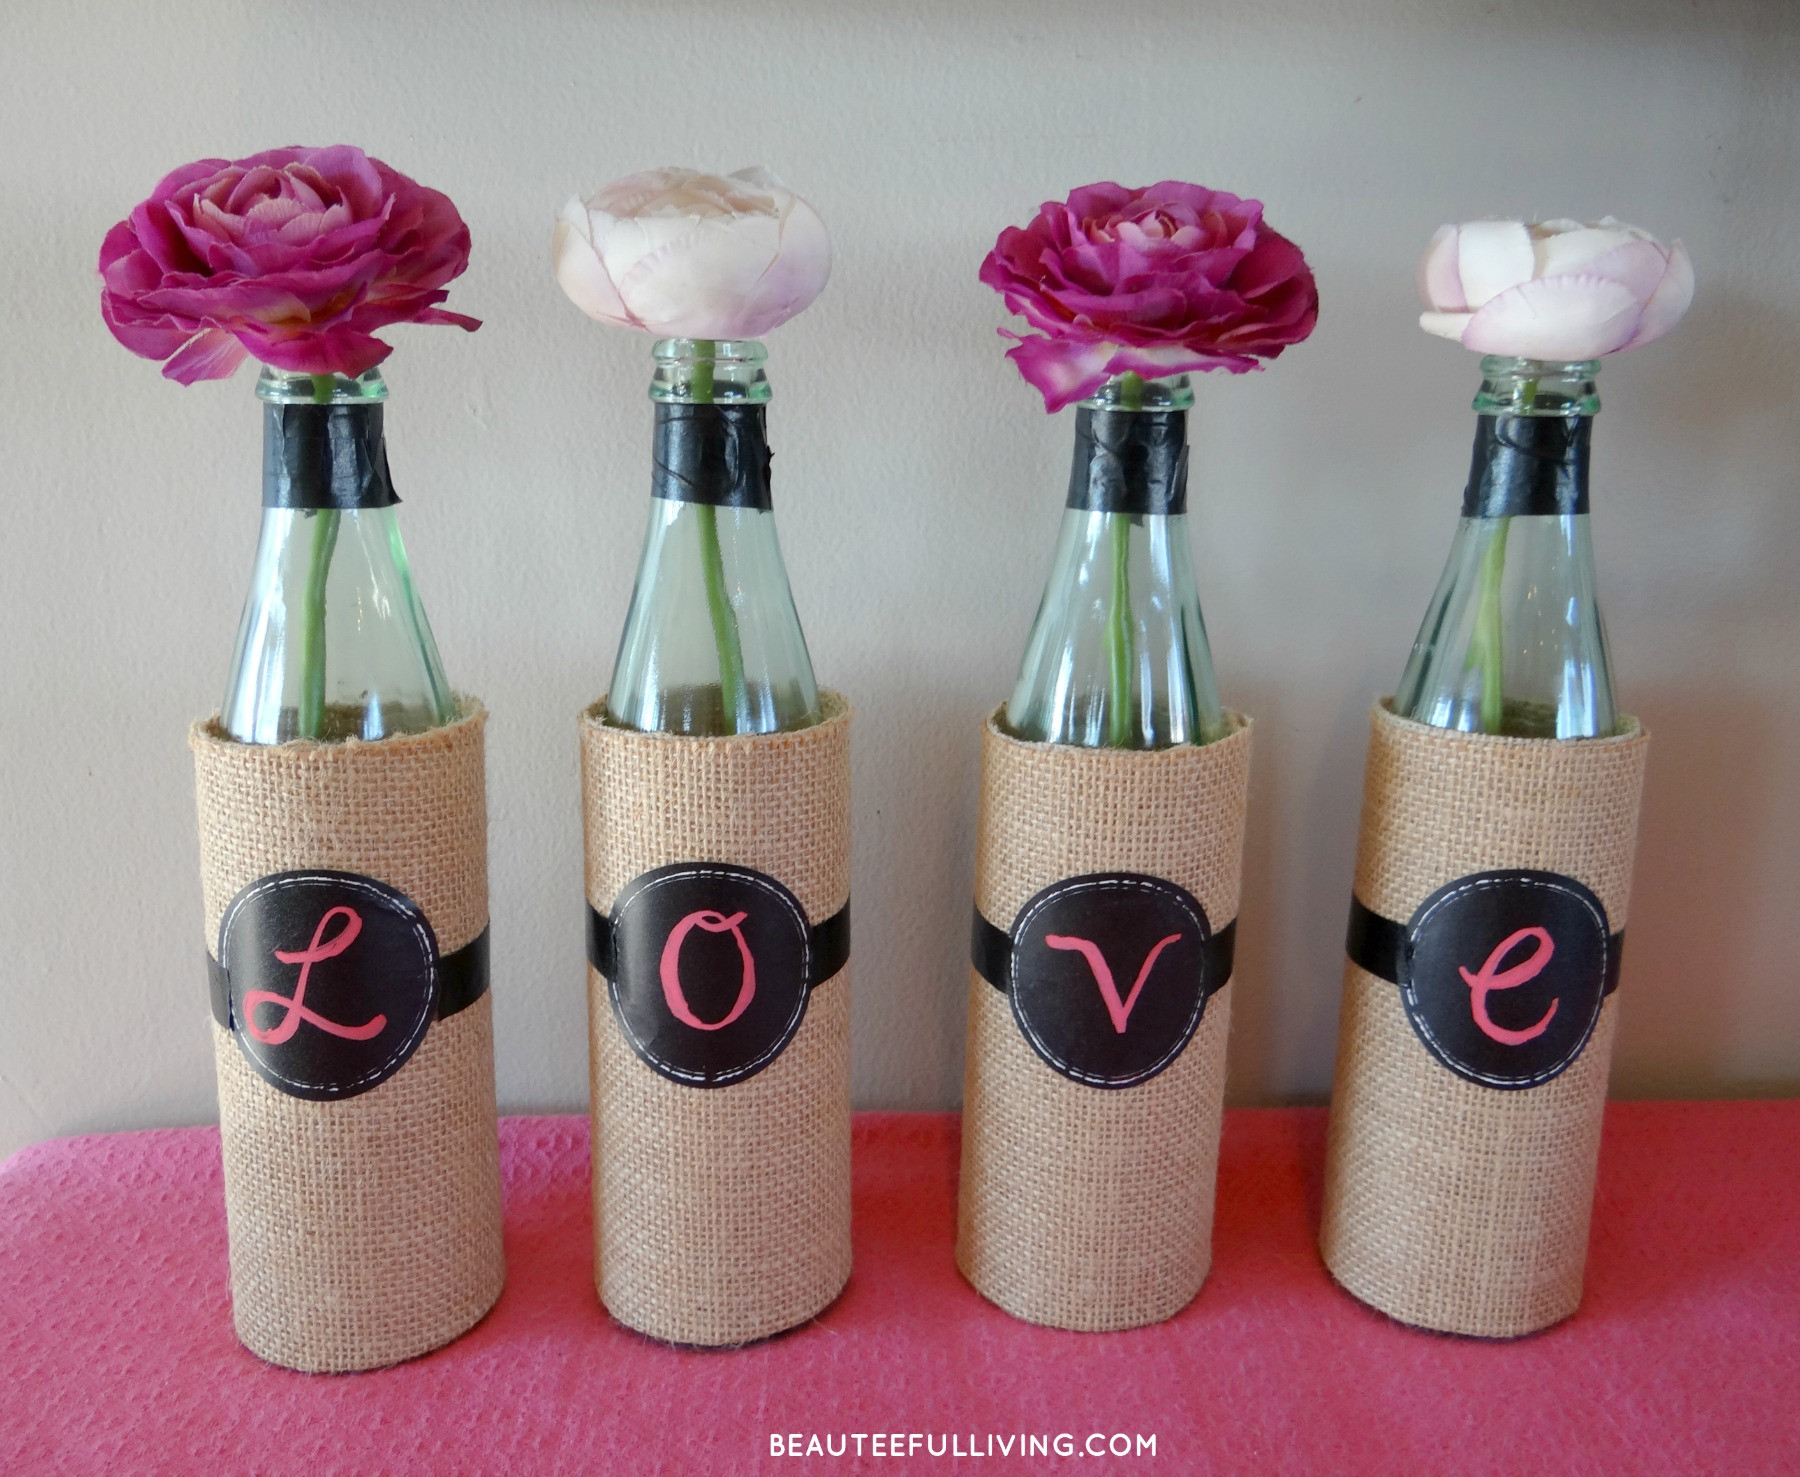 Best ideas about DIY Wine Bottle . Save or Pin DIY Wine Bottle Vases BEAUTEEFUL Living Now.